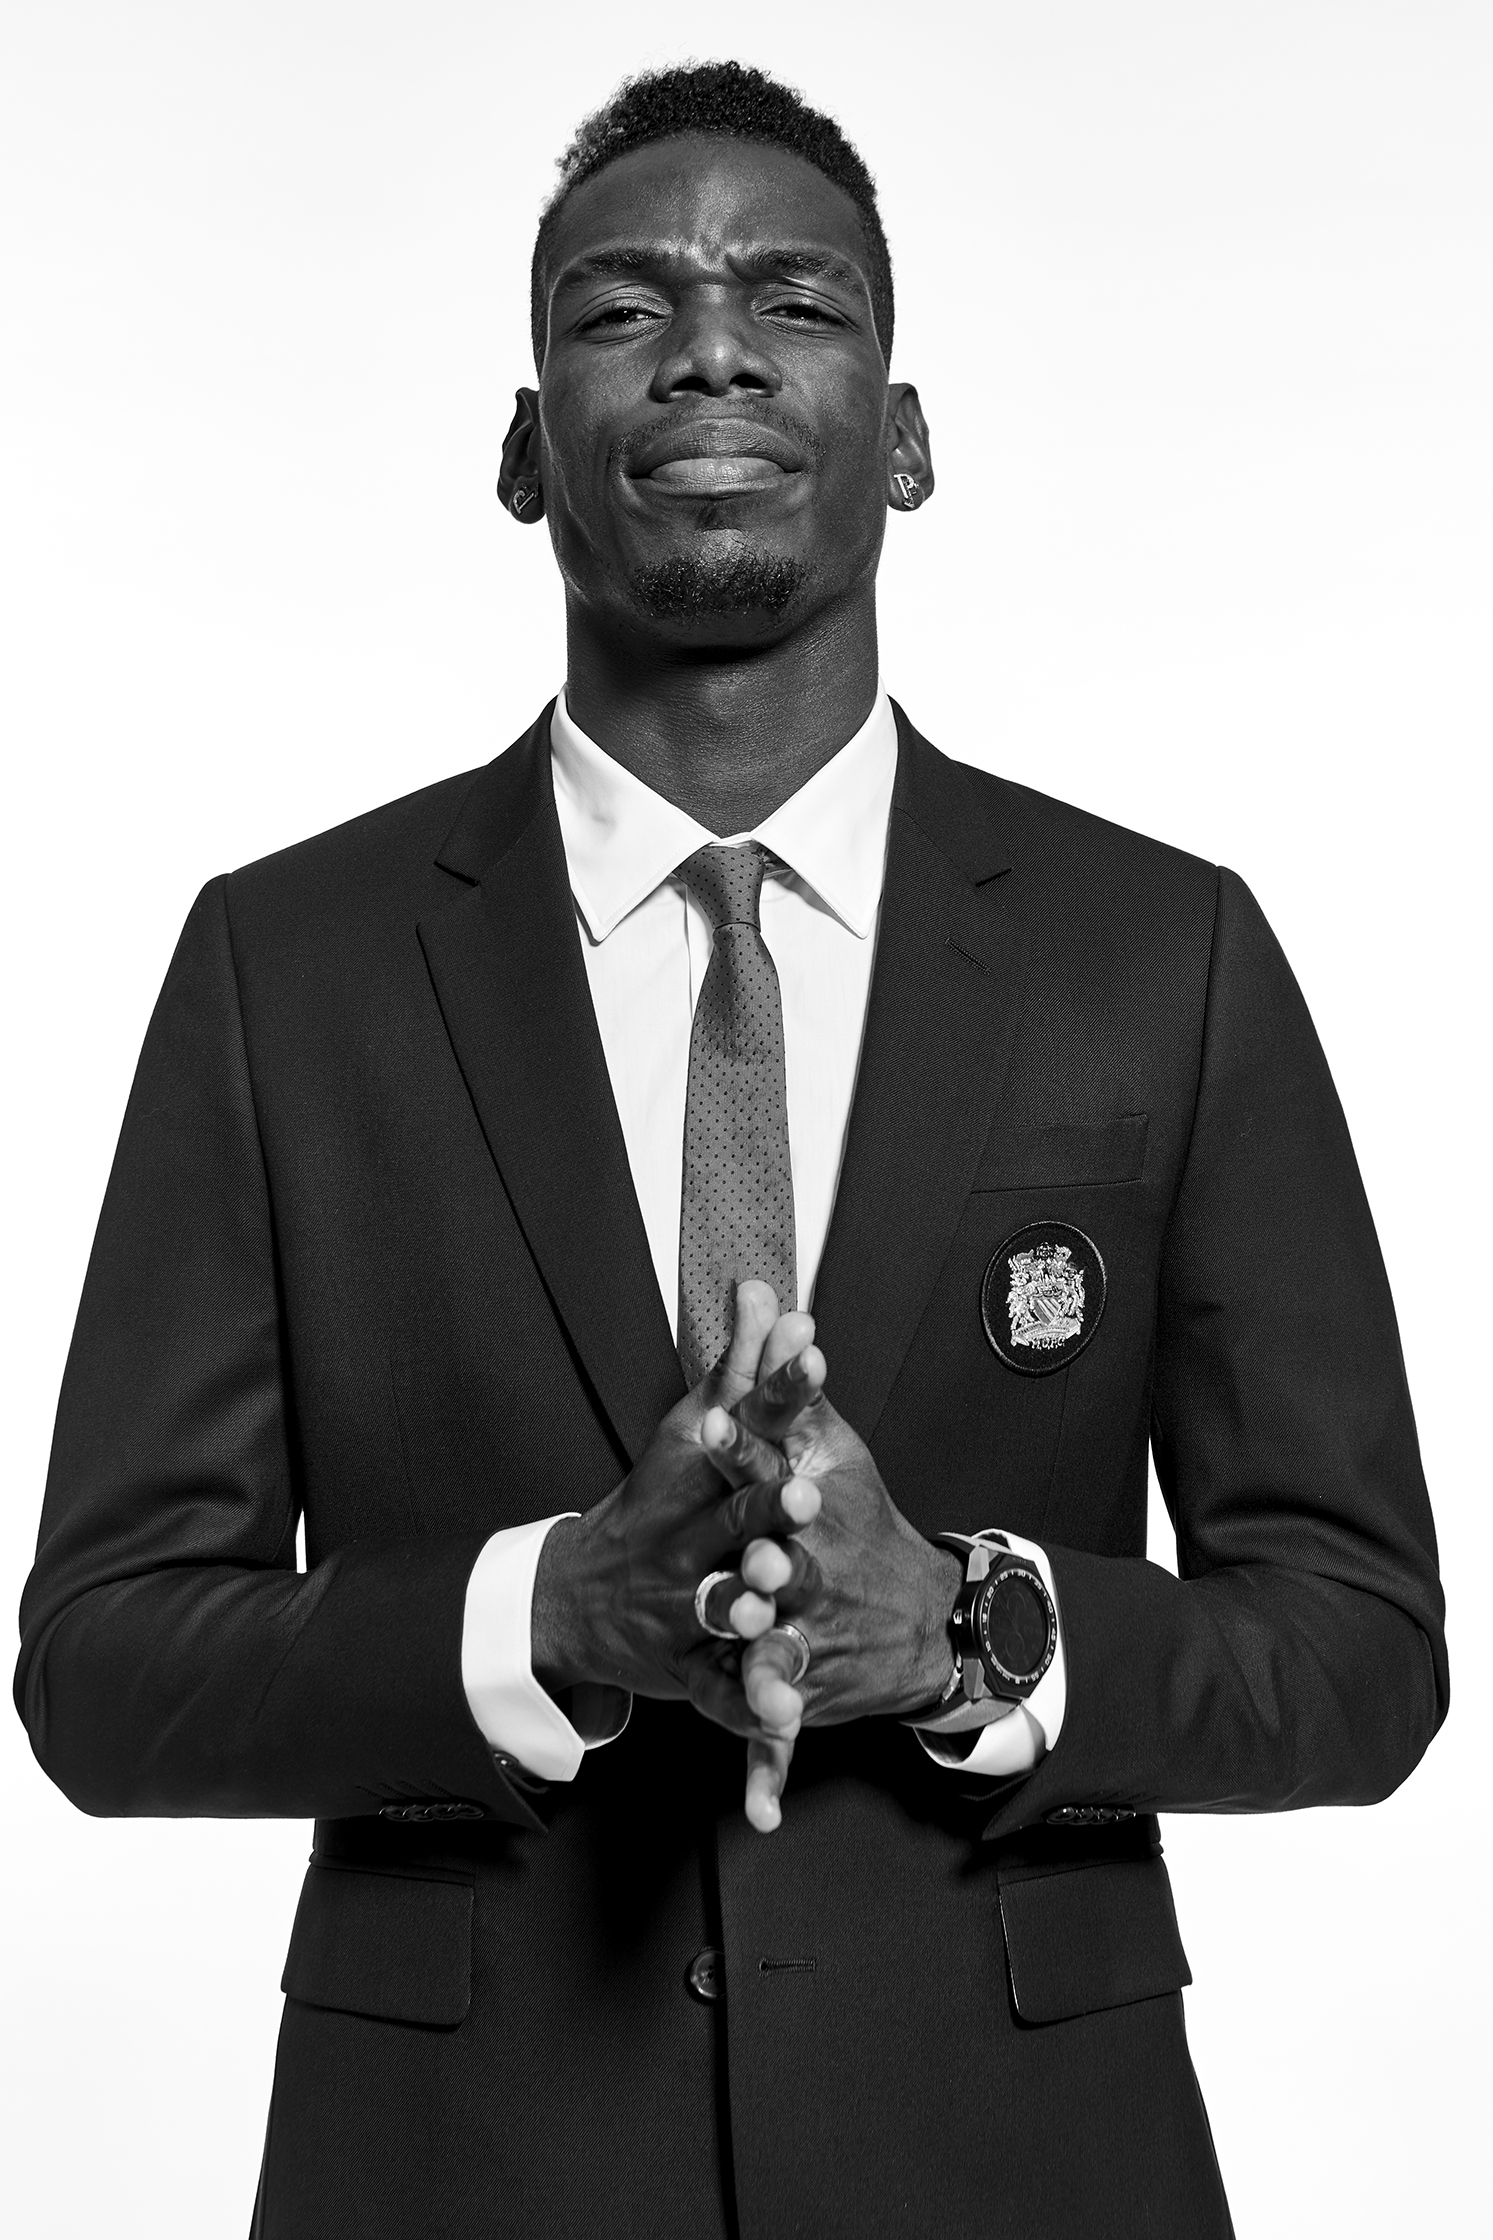 Paul_Pogba-blog web.jpg